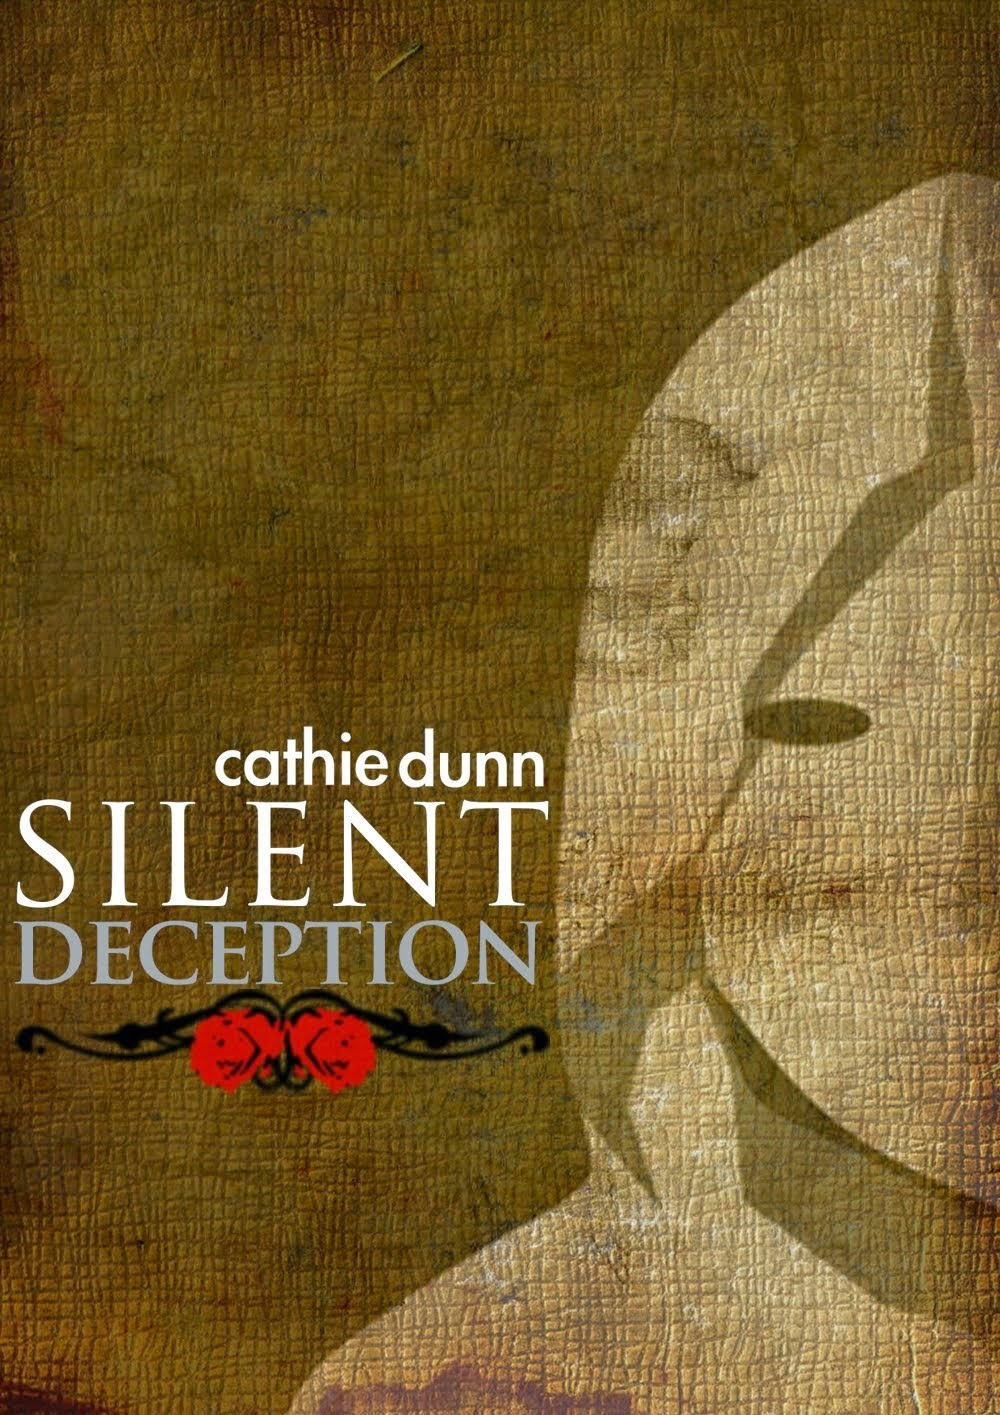 Immersed in Silent Deception...